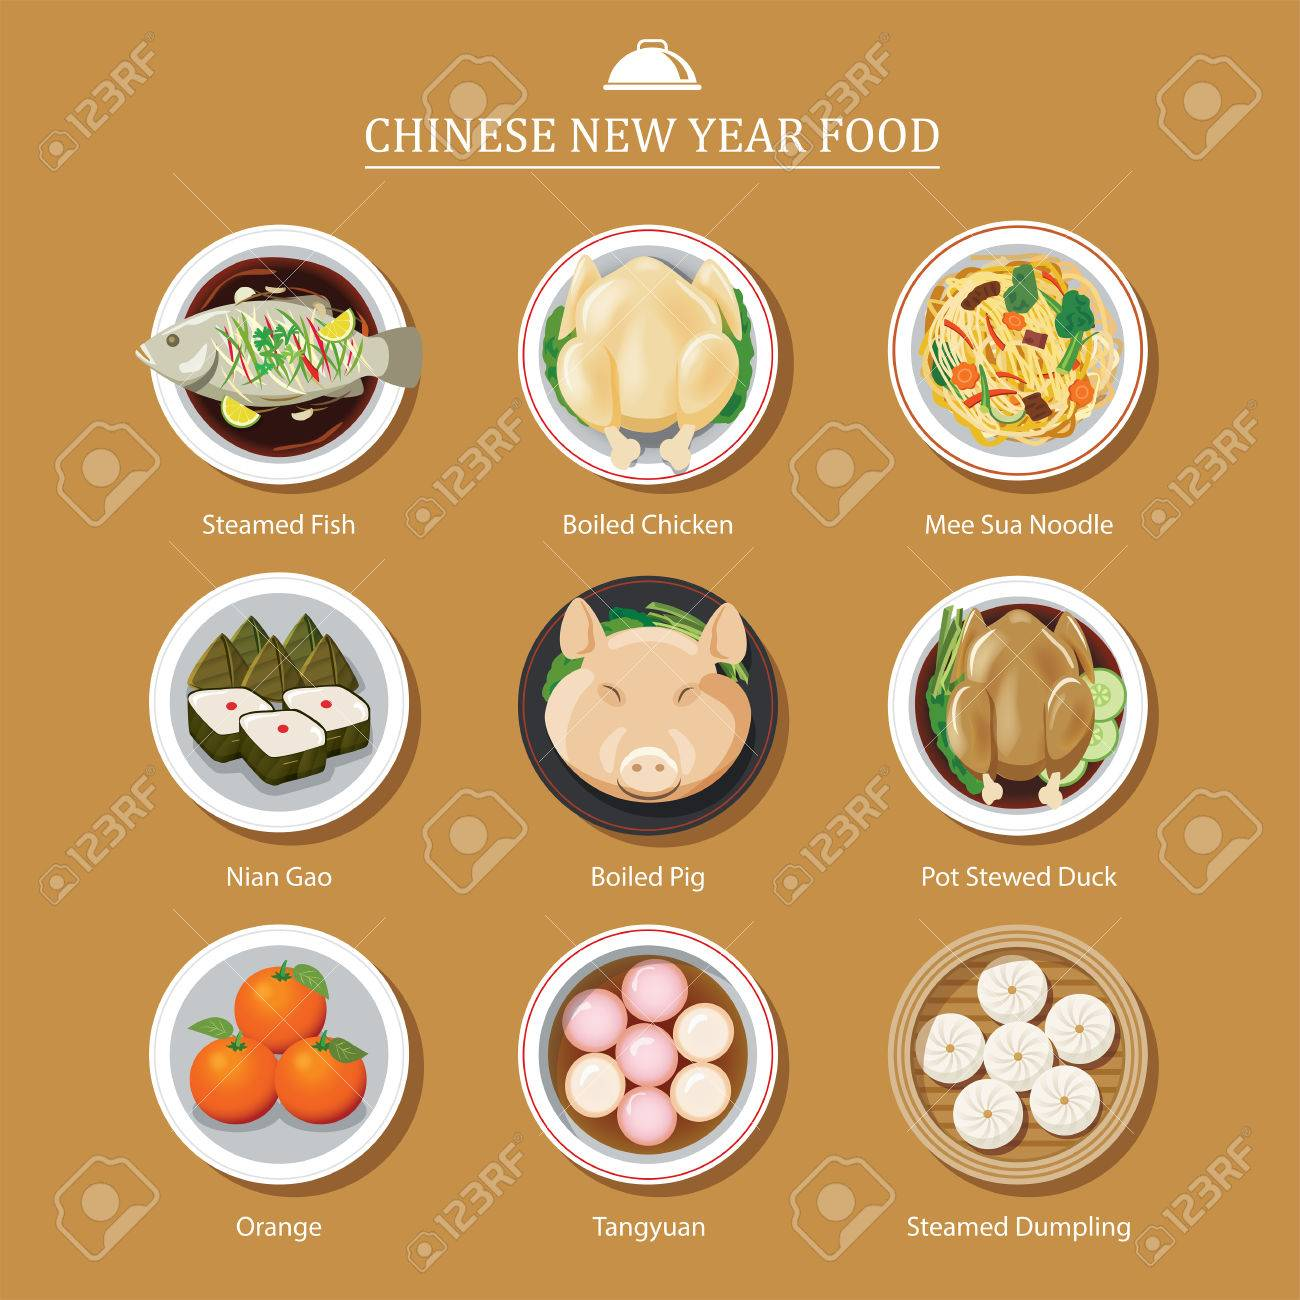 food for chinese new year - 69473392